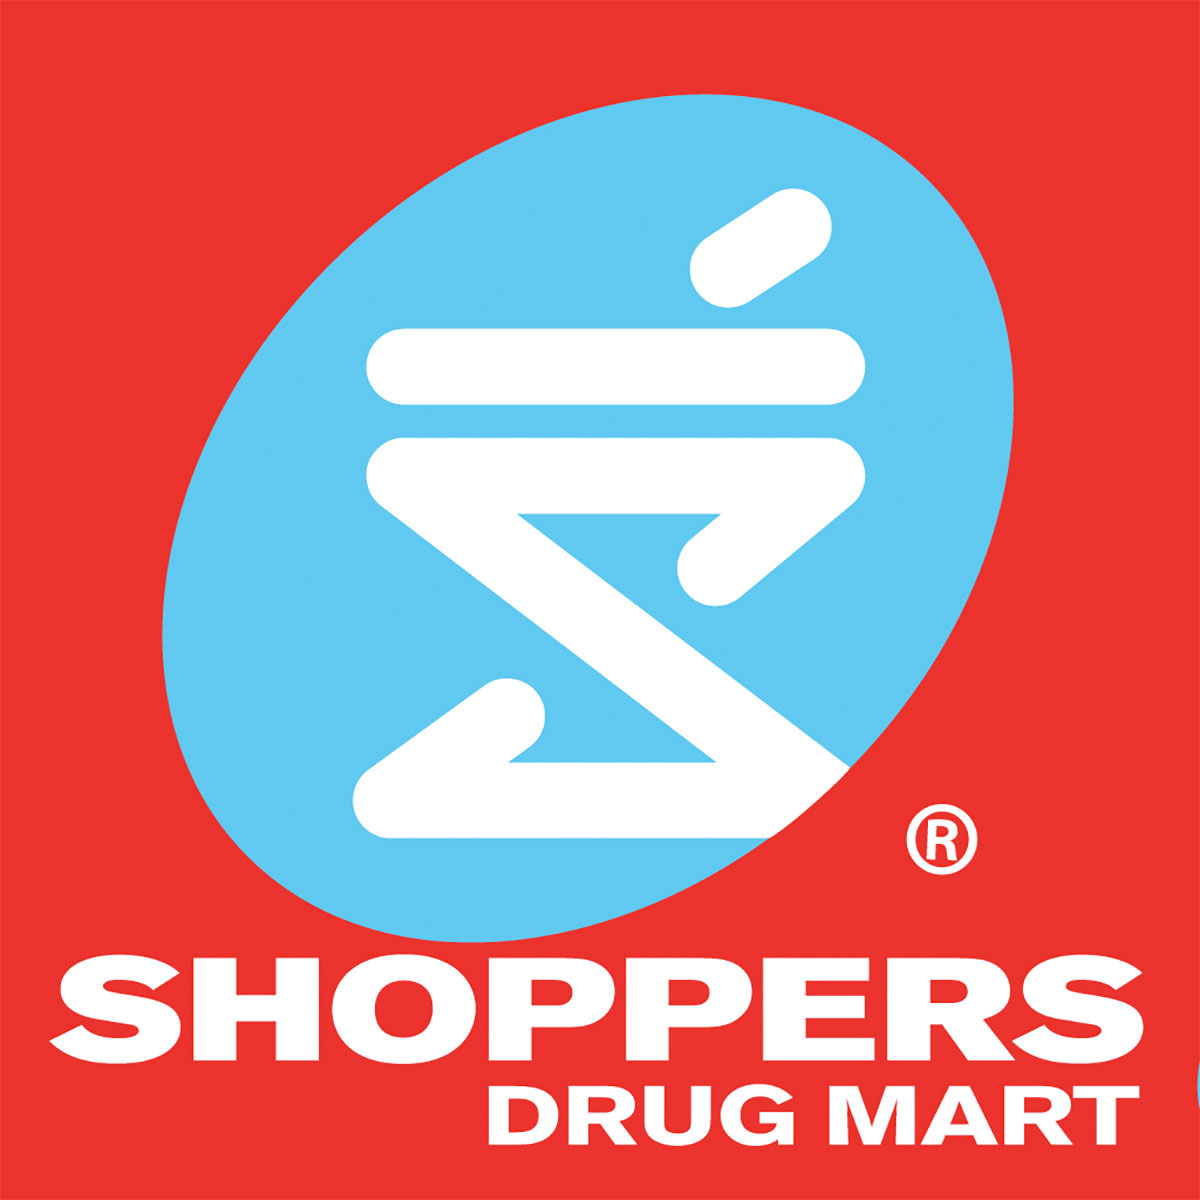 Shoppers Drug Mart Cashier Job Description. Key responsibilities of a Cashier include: Maintain the customer service and checkout area for prompt and accurate processing of the.